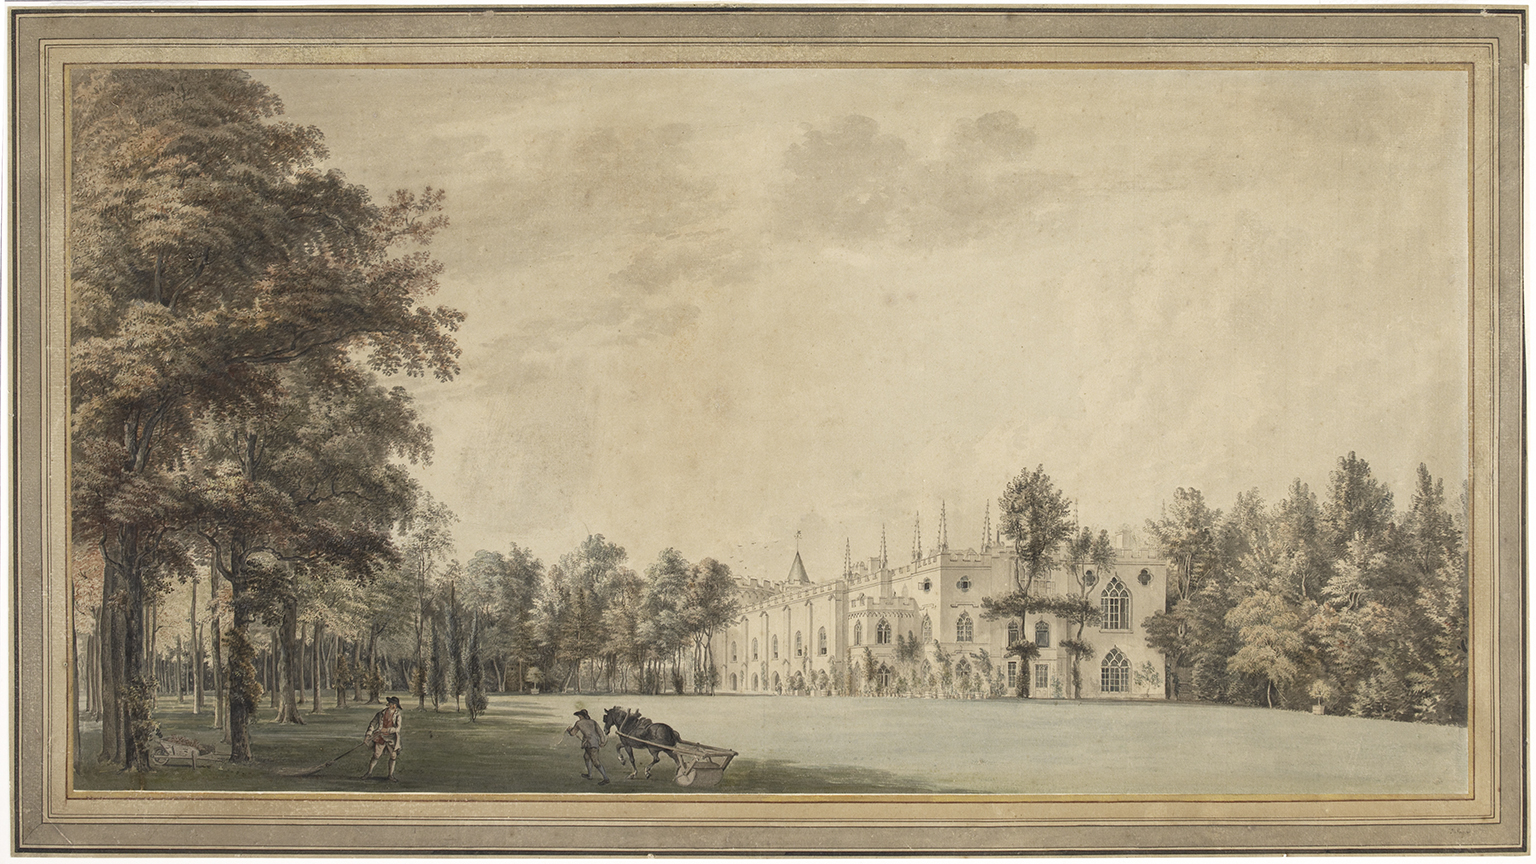 Paul Sandby, Strawberry Hill from the South East, 1774. Watercolour. Courtesy of Lewis Walpole Library, Yale University